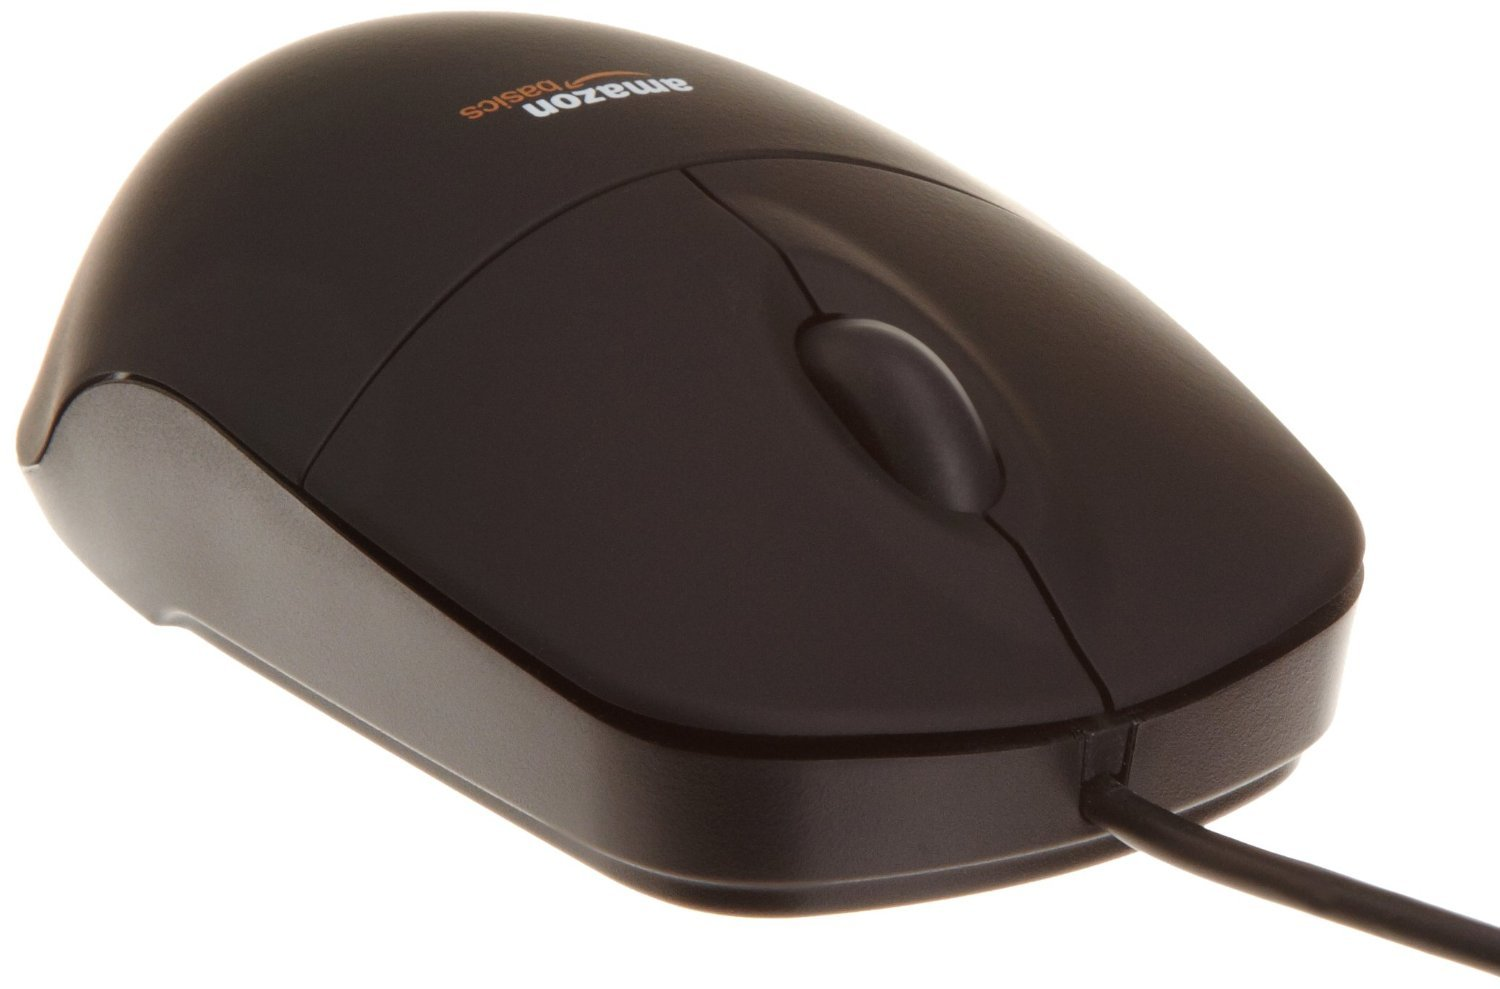 Amazon.com: Ratones Con Cable - Raton De Computadora - Mouse Para Computadora: Computers & Accessories